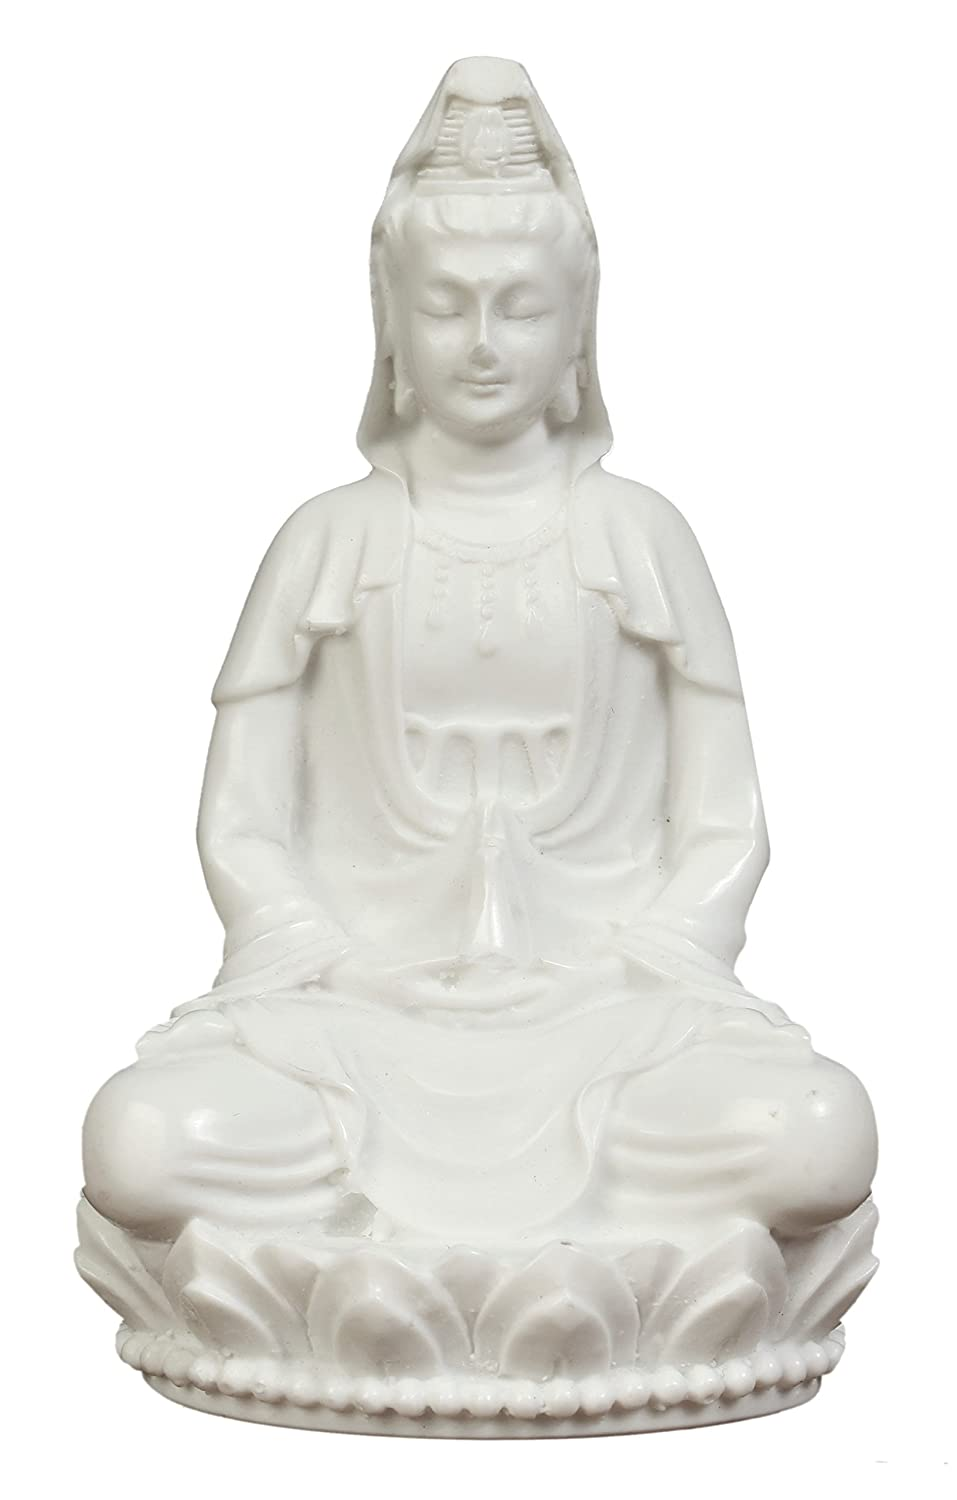 3in Guan Yin Statue Small. Poly Marble with White Marble Finish. Premium Quality Quan Yin Statue. Buddhist Avalokiteshvara Kuanyin/Quanyin Buddhism Statue on Lotus (Marble White). Kuan yin Statue.